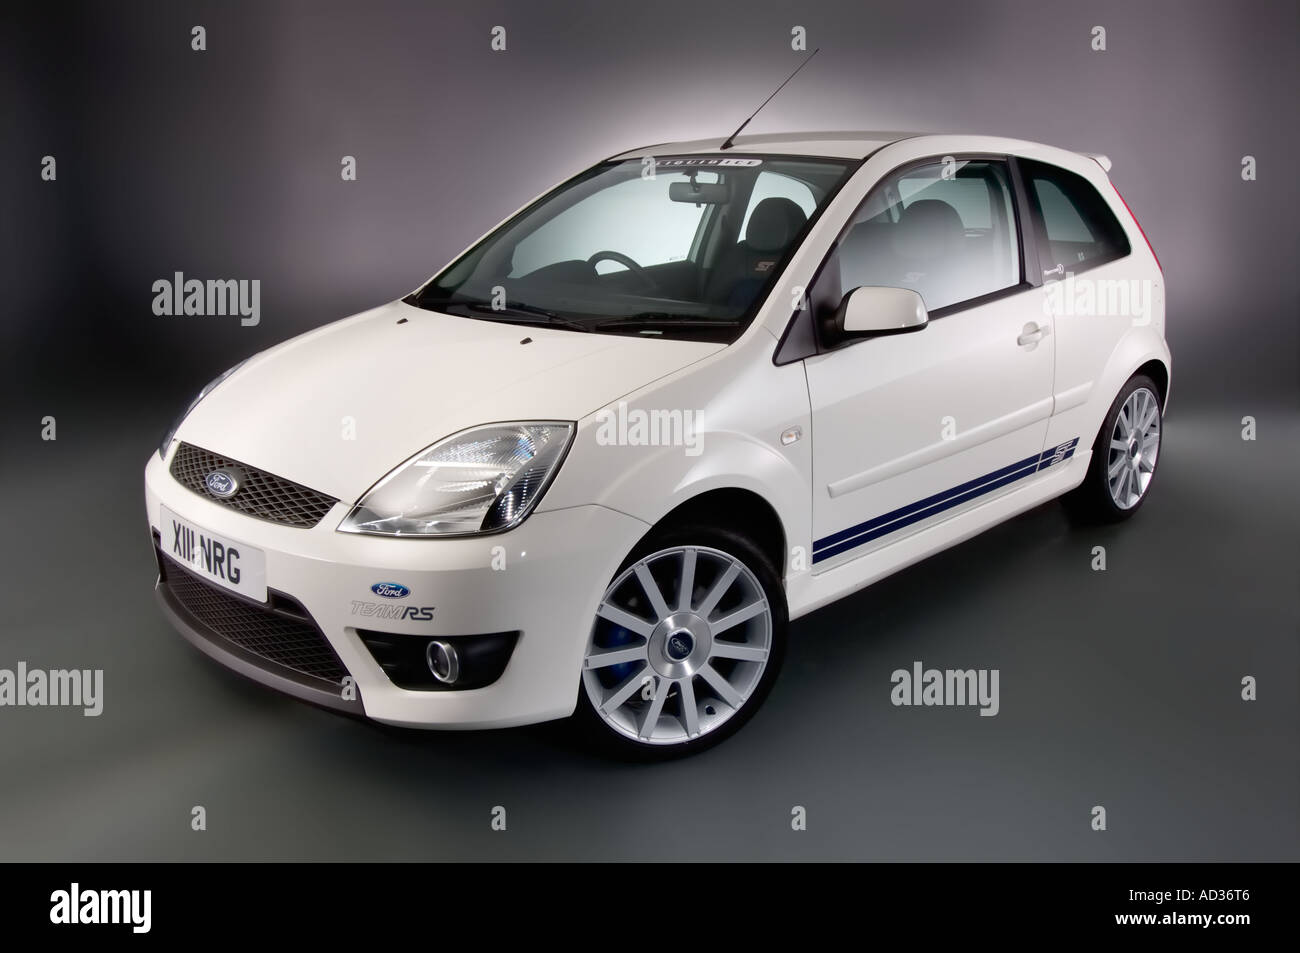 2005 ford fiesta st in diamond white front left three quarter view stock photo royalty free. Black Bedroom Furniture Sets. Home Design Ideas